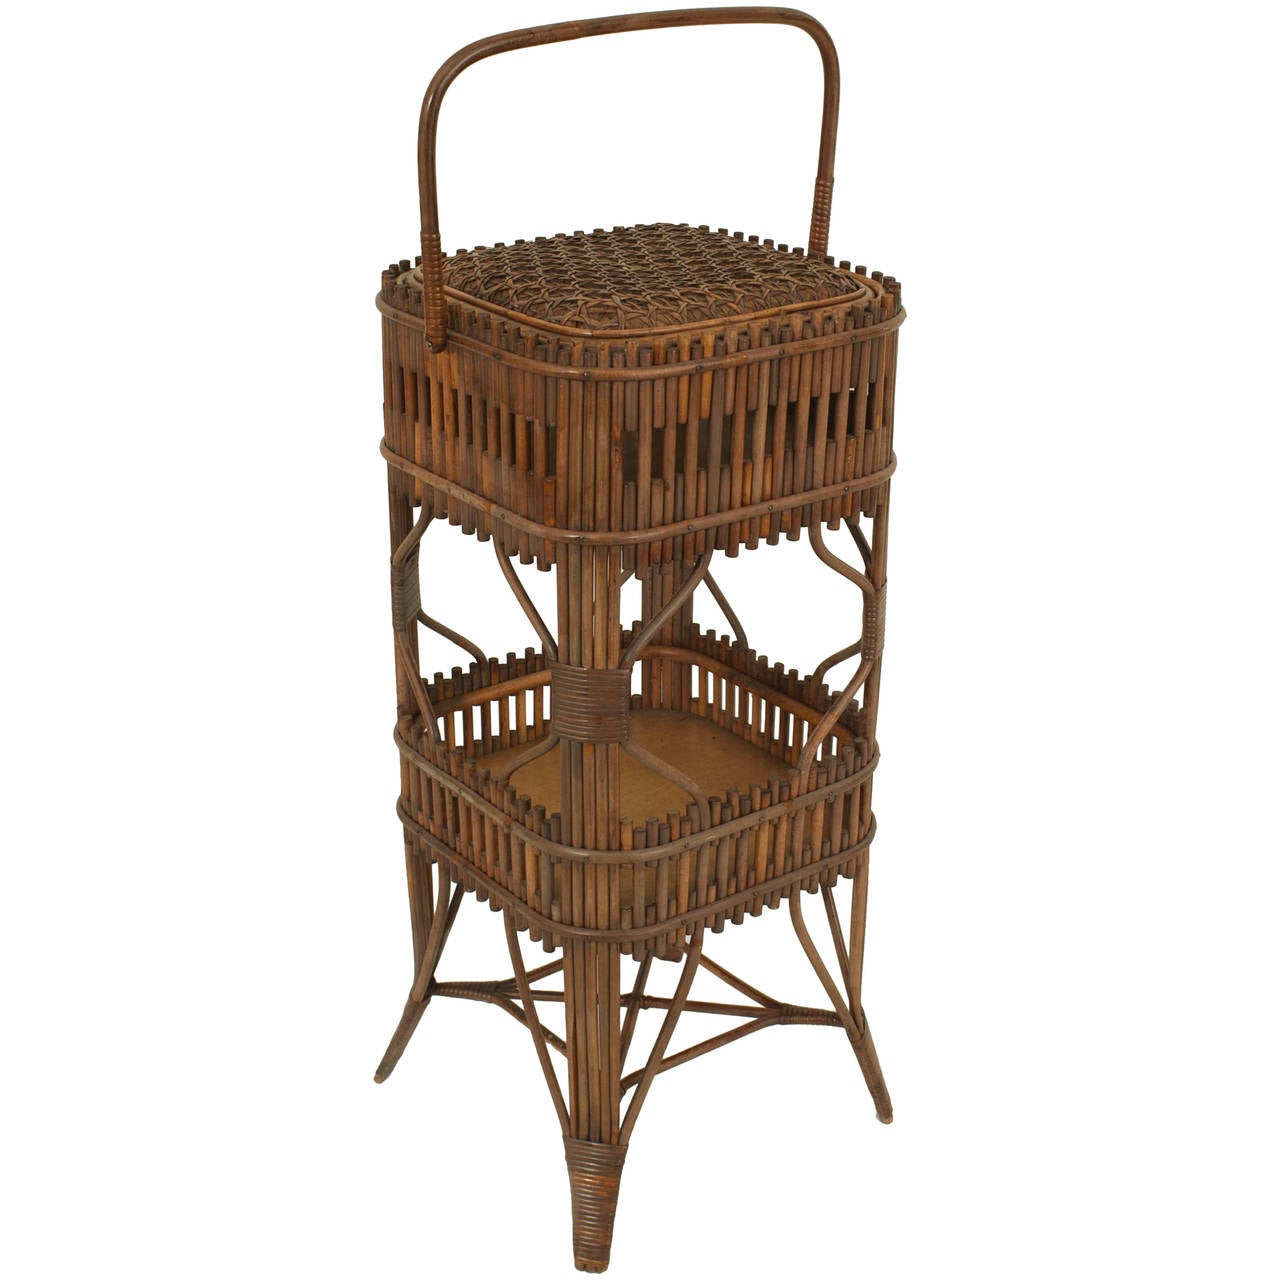 19th century american natural wicker sewing end table by wakefield rattan co for sale at 1stdibs. Black Bedroom Furniture Sets. Home Design Ideas